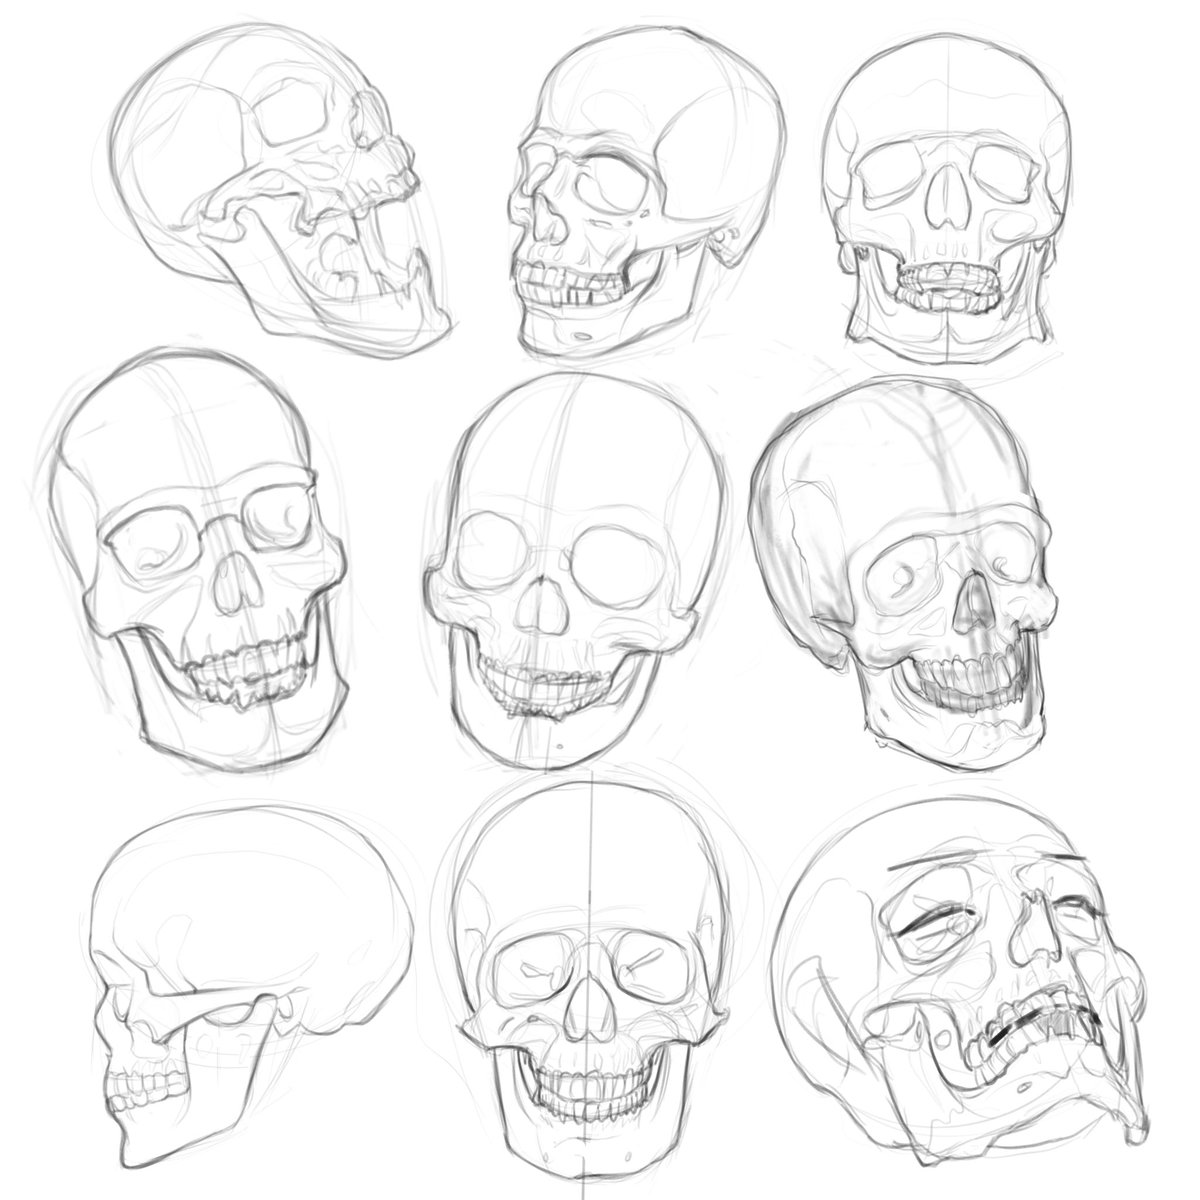 Ergo Josh On Twitter We Re Drawing Spooky Bois Tomorrow At 1pm Est Come Learn How To Draw Skulls Or Maybe 2spooki4u